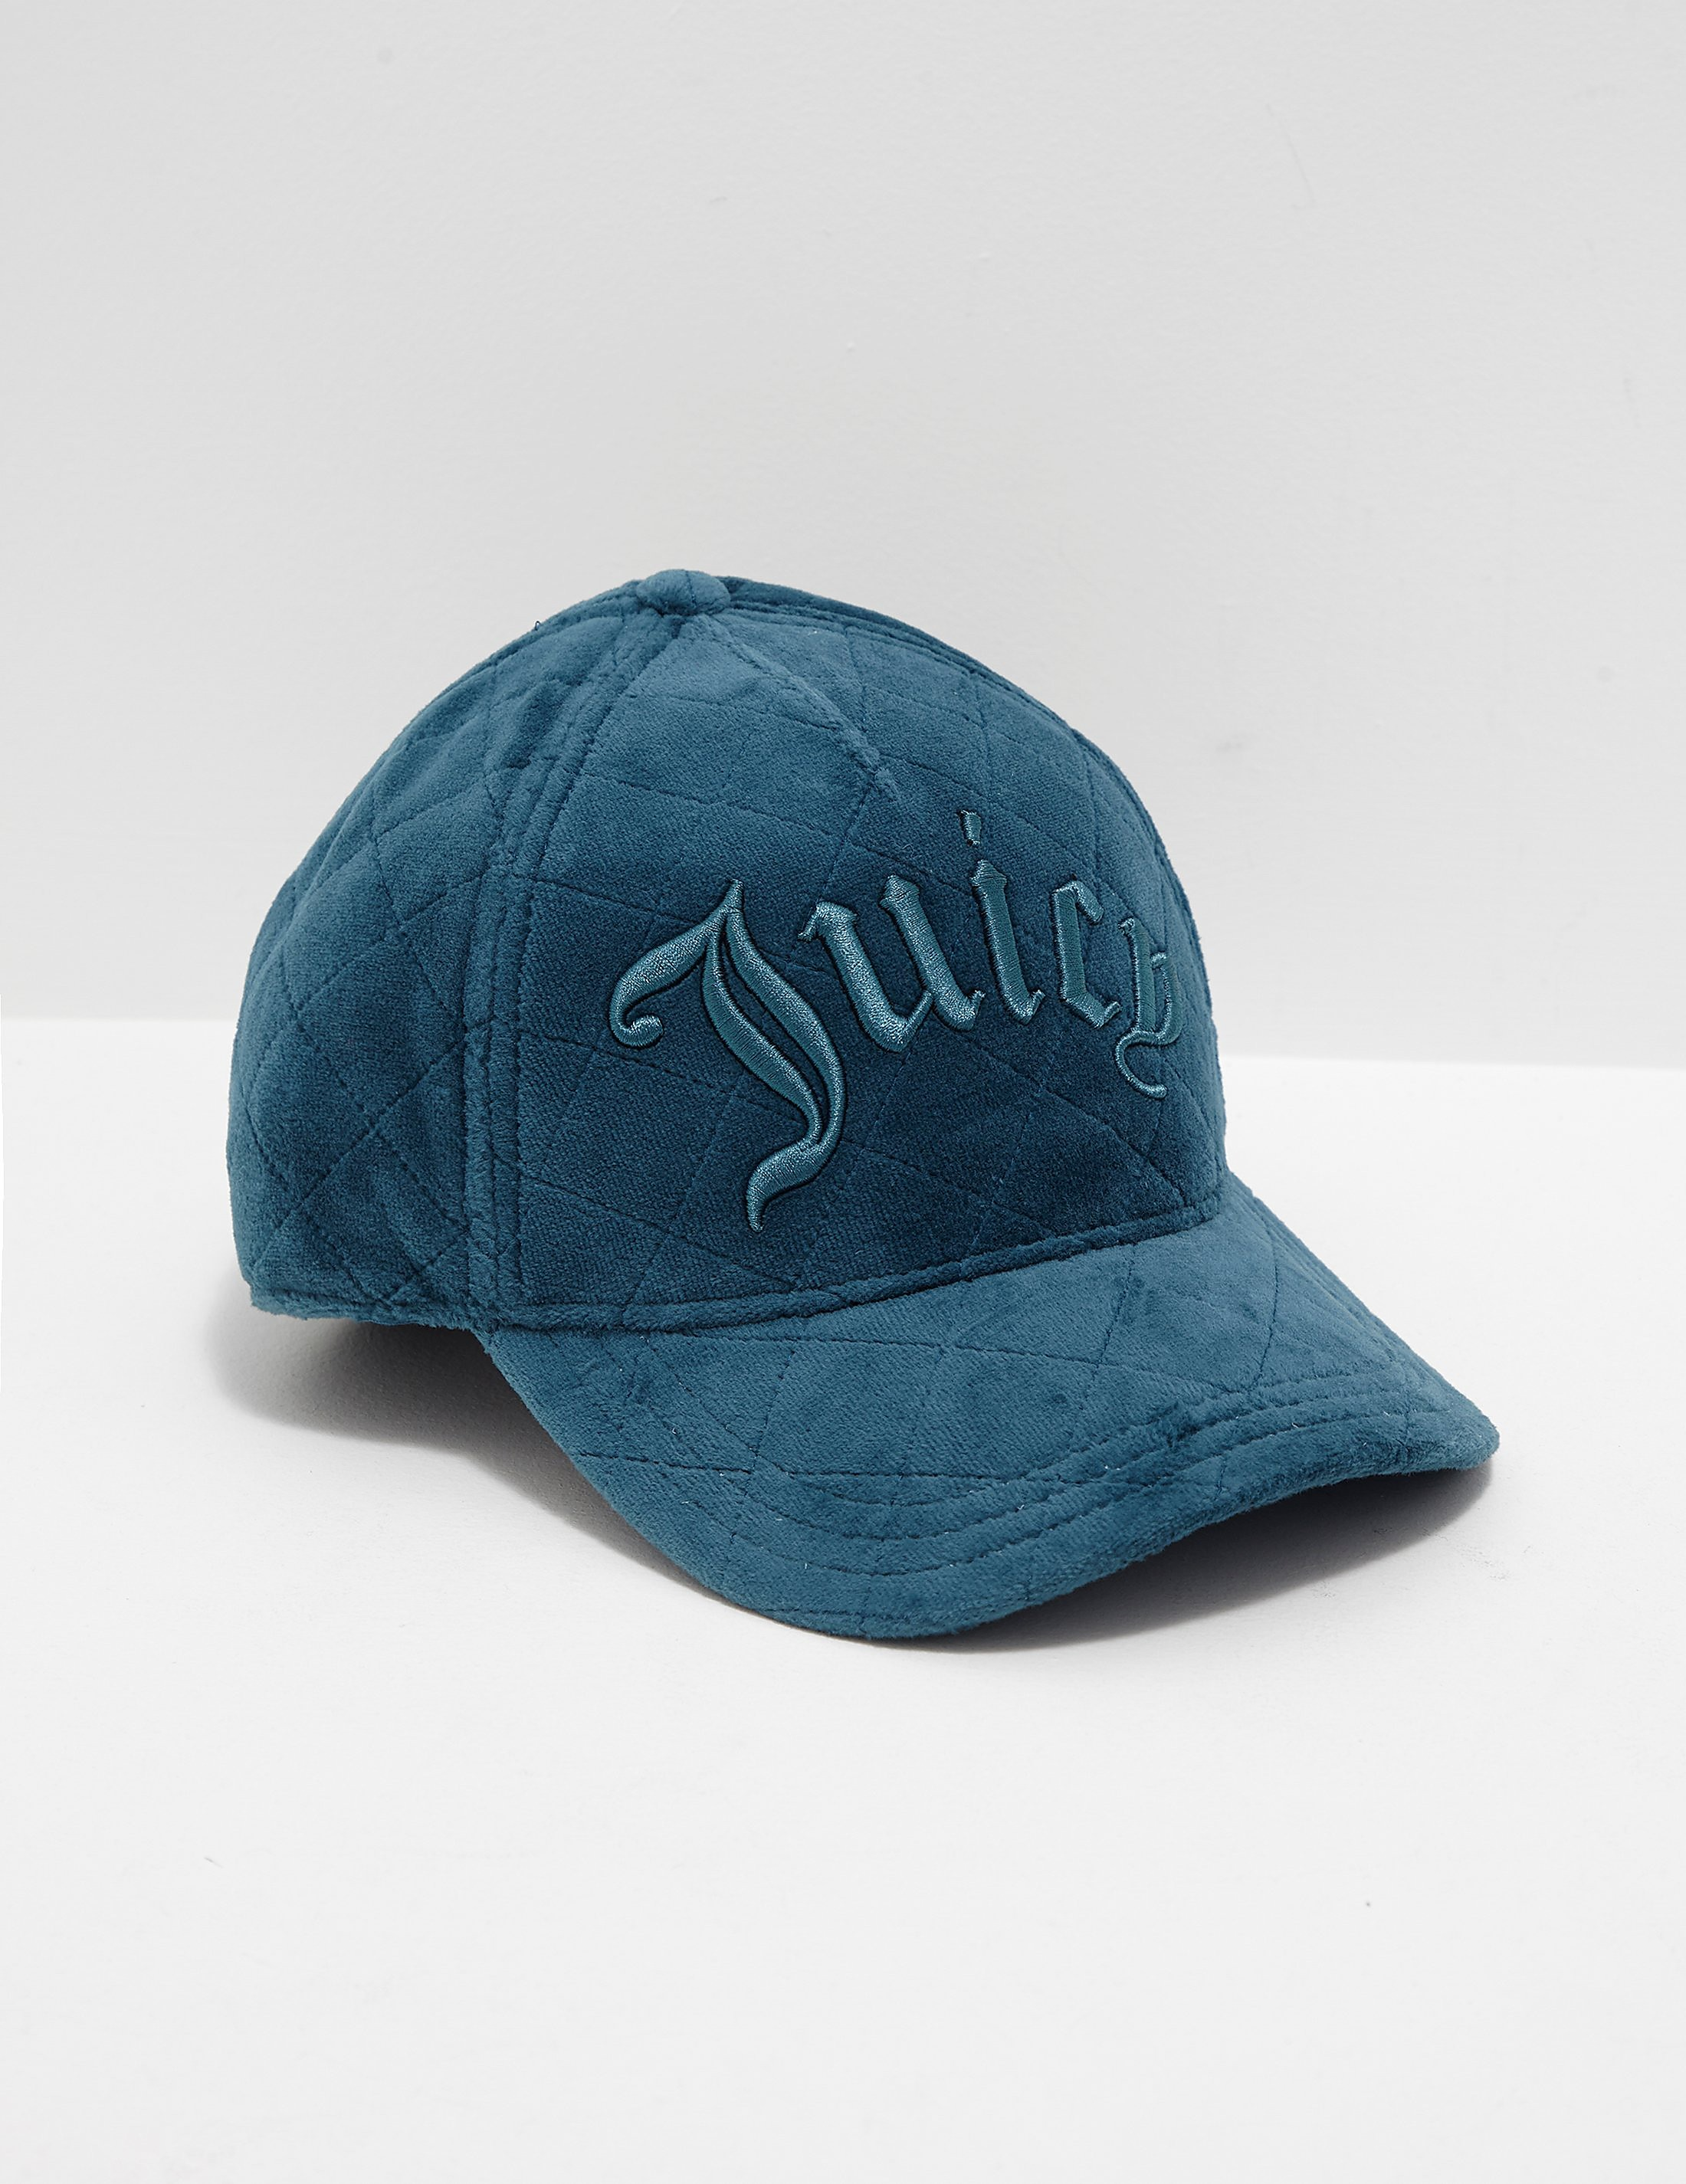 Juicy Couture Velour Cap